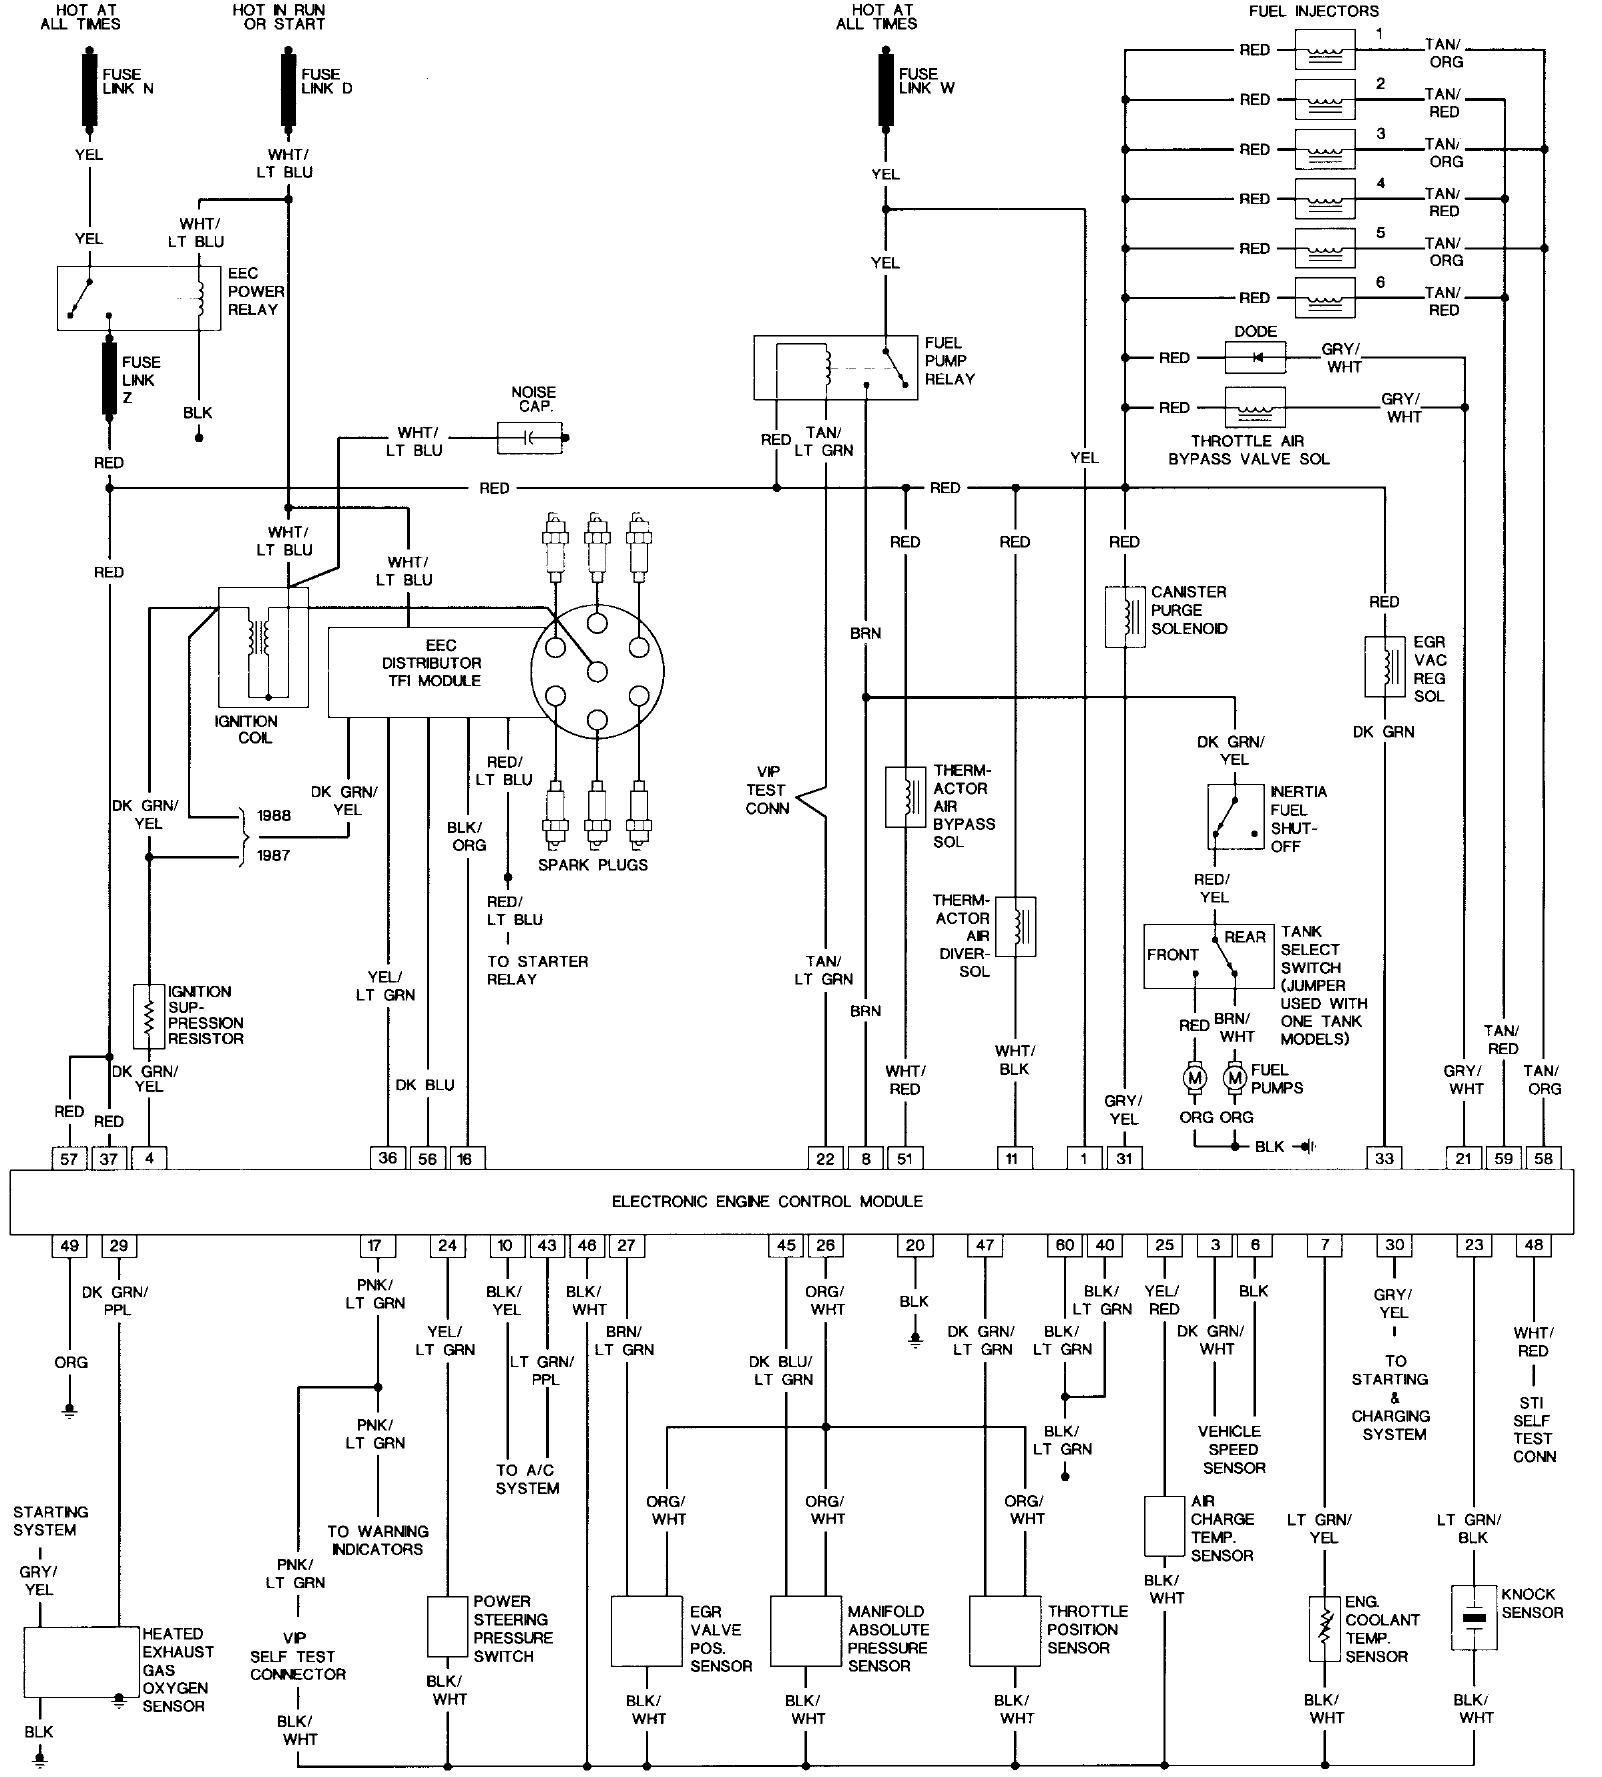 similiar ford f 250 wiring diagram keywords ford f 250 wiring diagram further 1984 ford f 250 wiring diagram